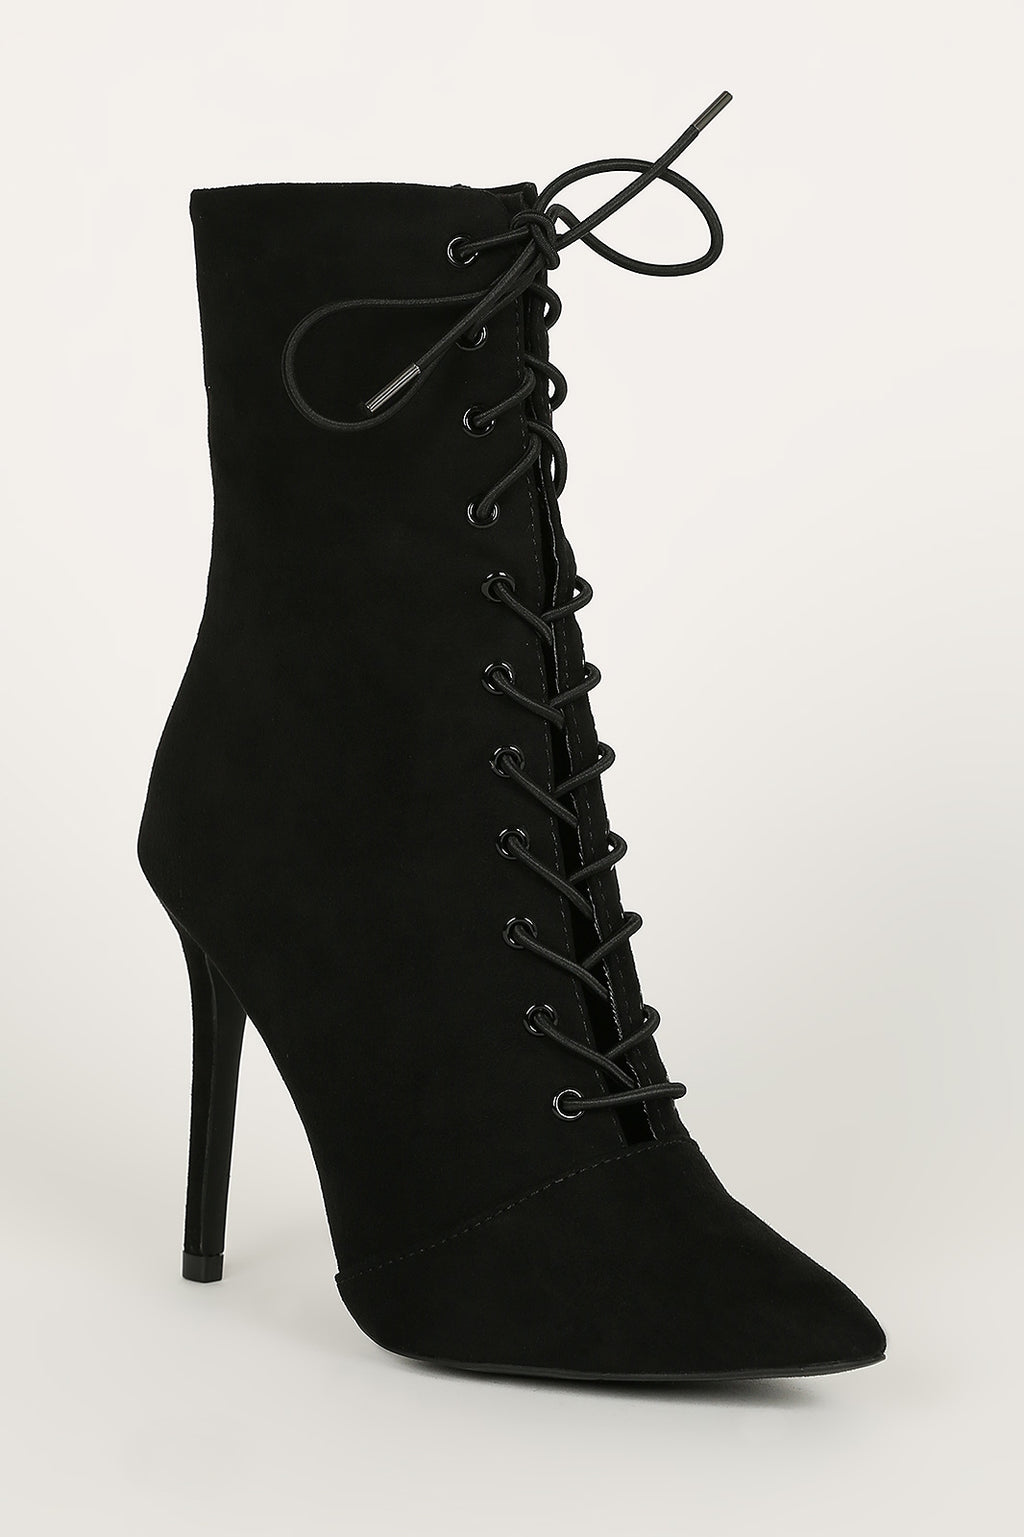 The London - Black Stilleto Lace Up Booties